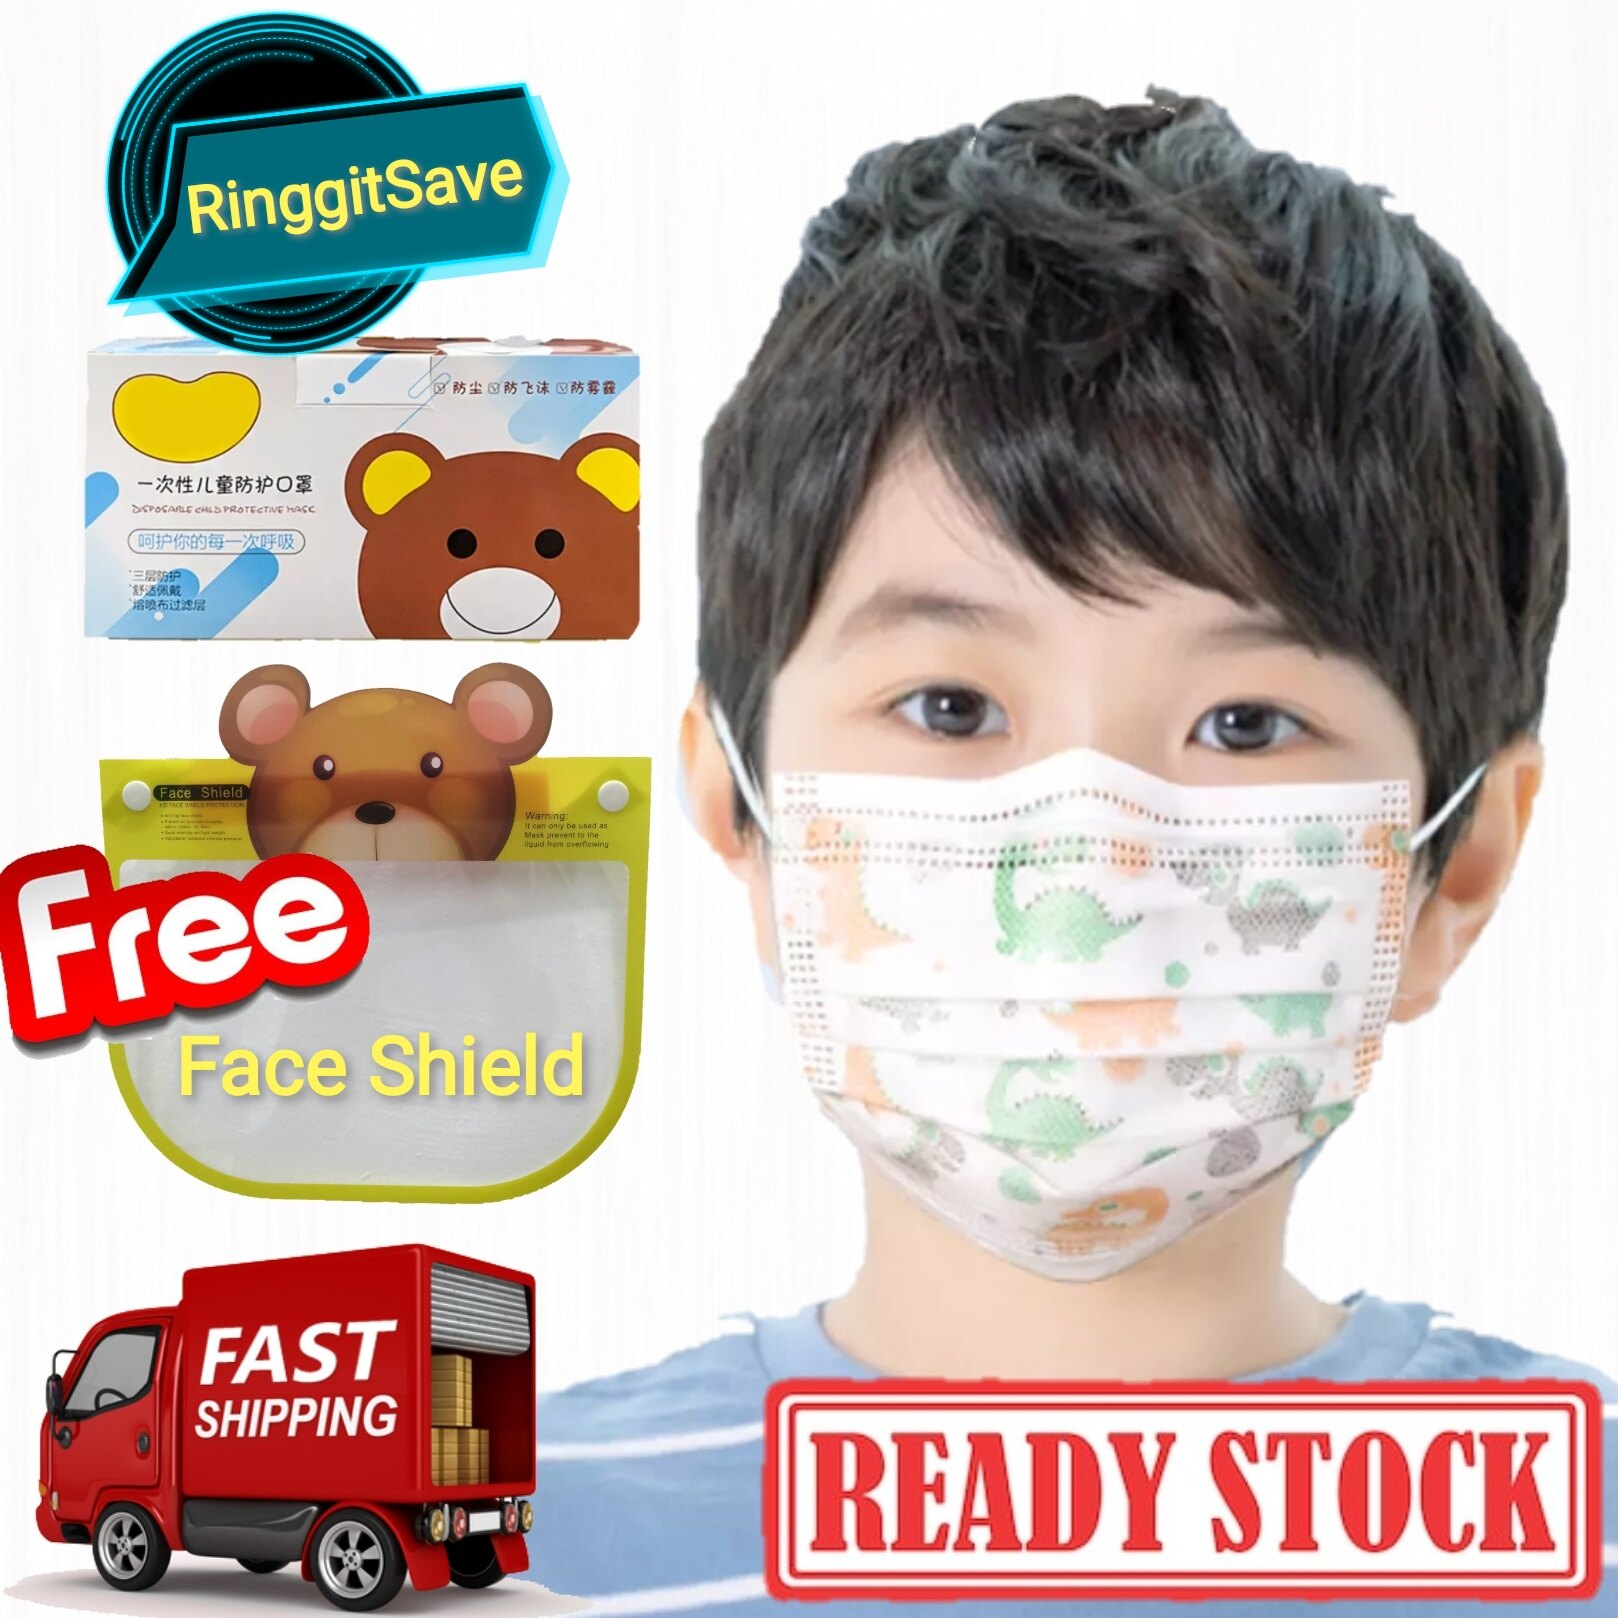 (Ready Stock) 50PCS Malaysia Kid Face Mask Shield 3 Ply Disposable Mouth Kid Face Mask Safety Non-woven Fabric Filtration For Kids Baby Protection Face Mask (Free Kid Face Shield)